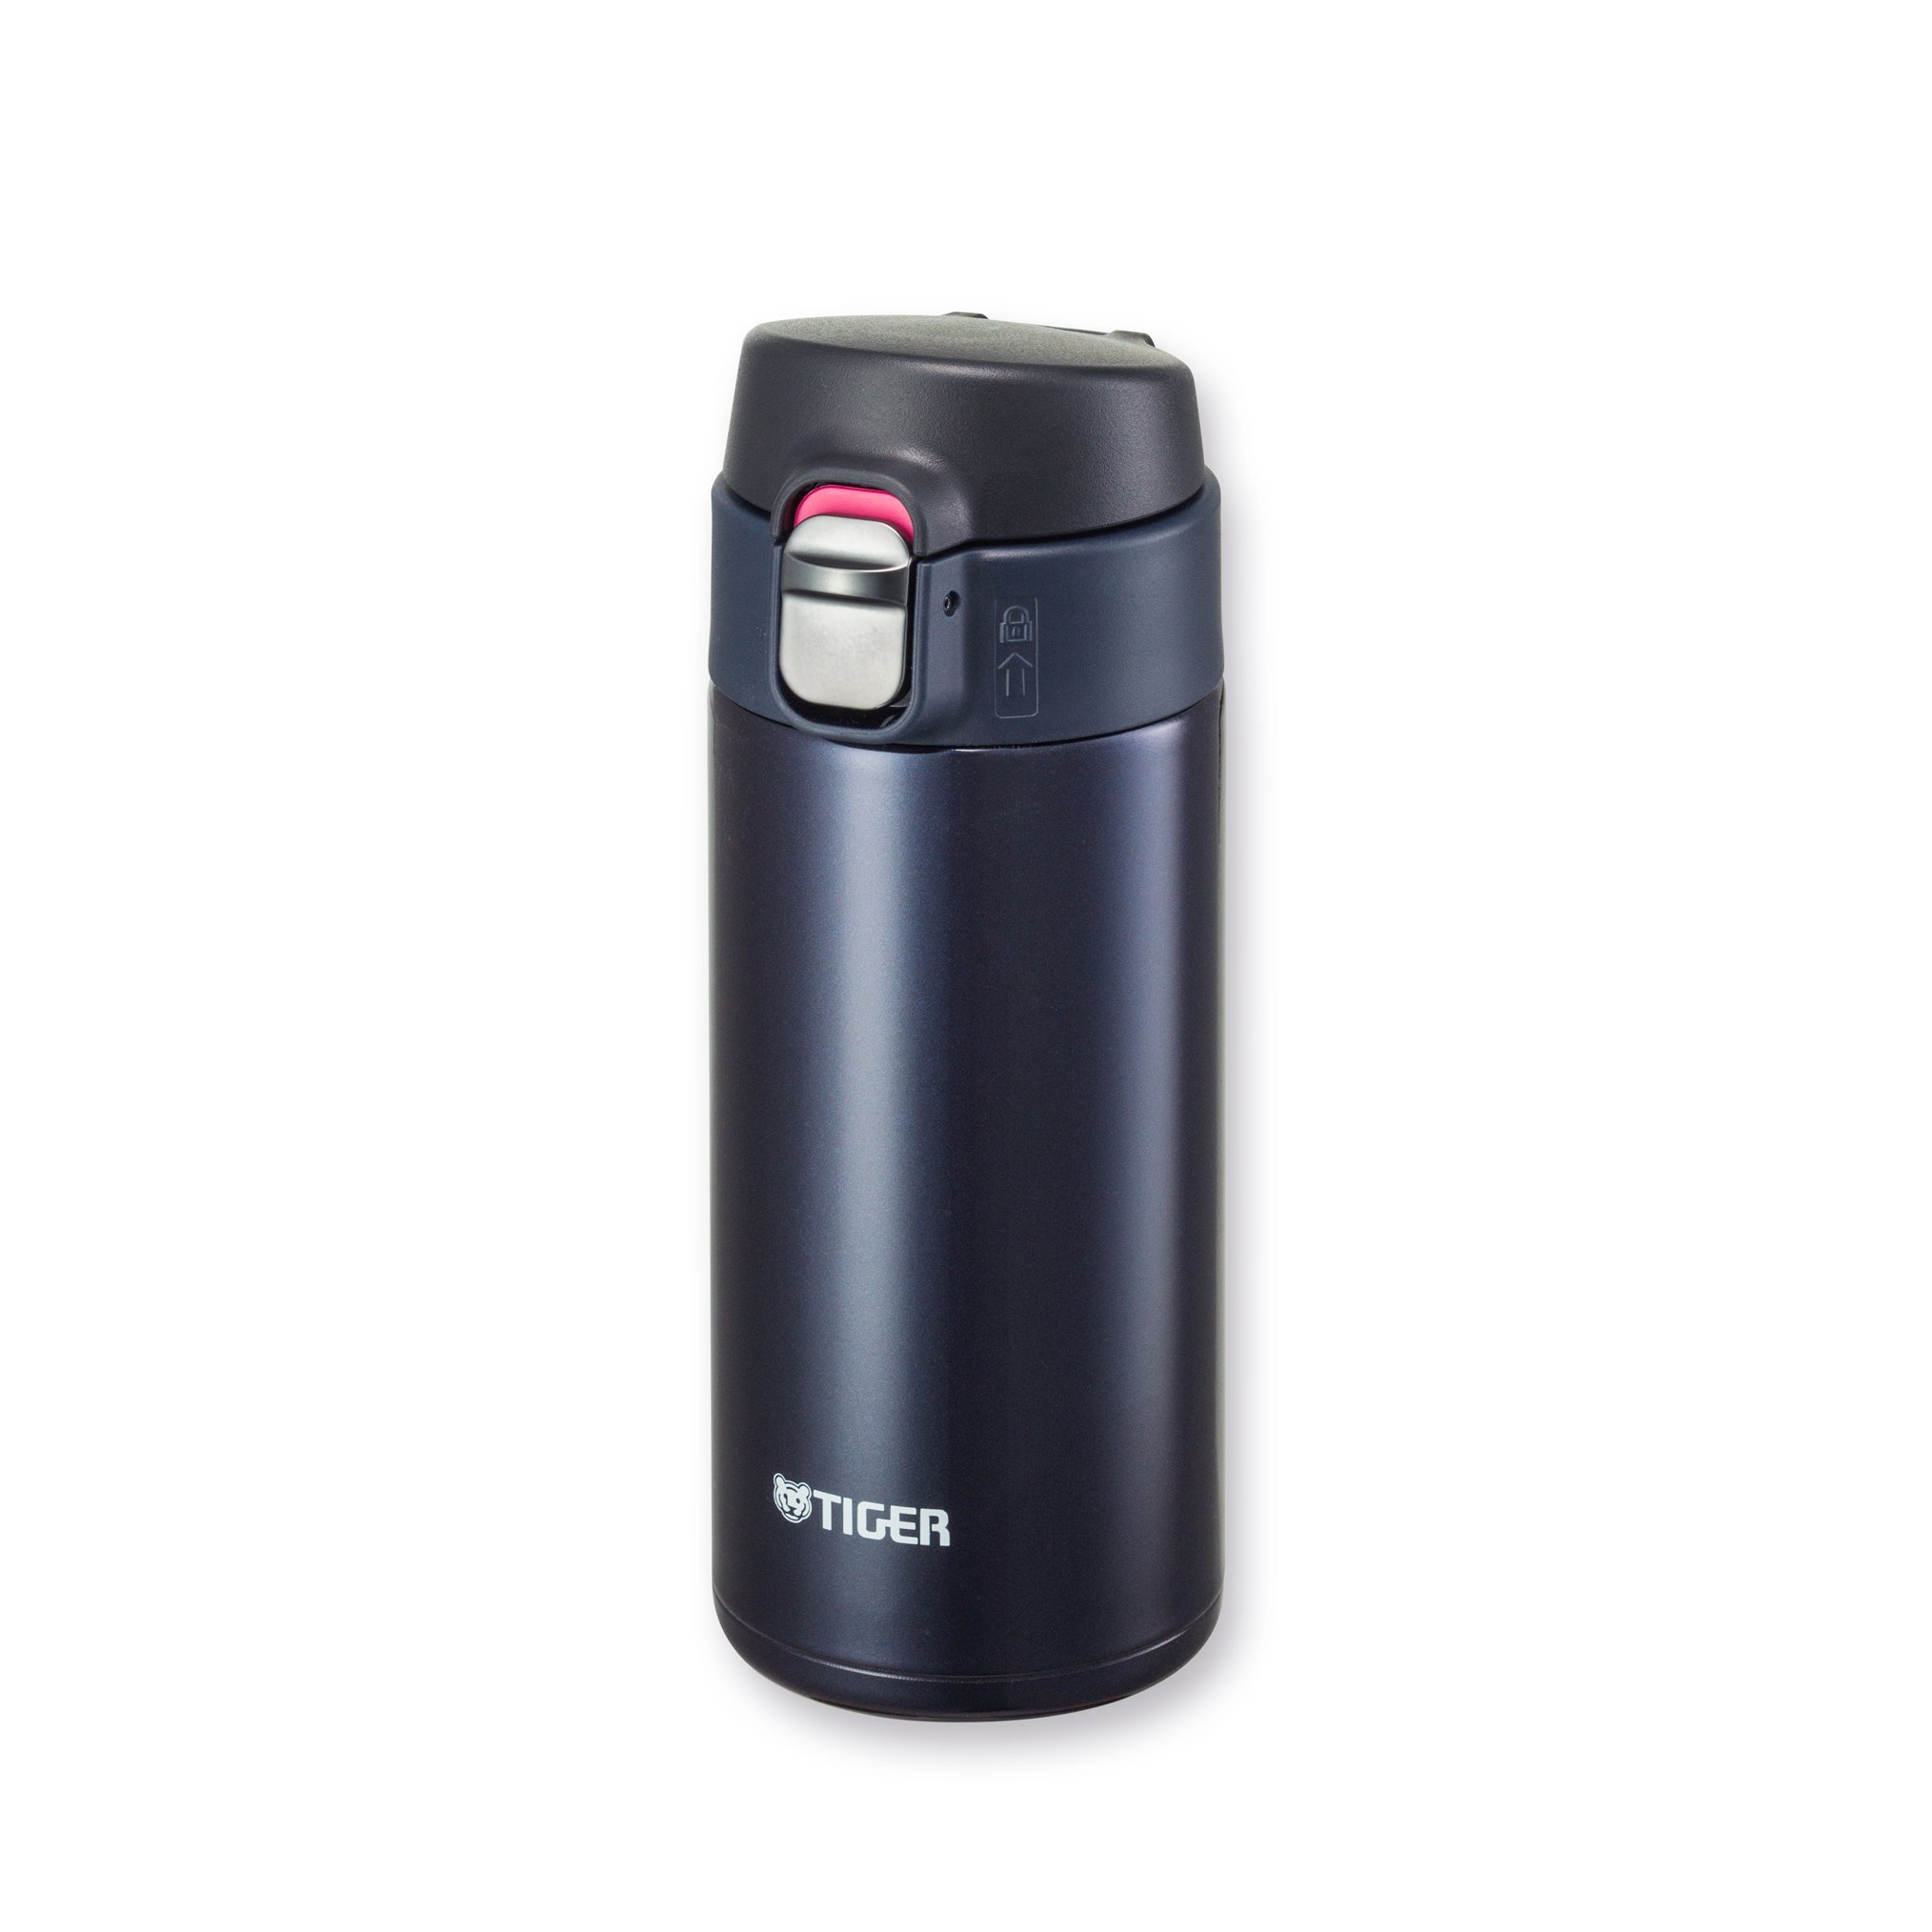 Tiger MMJ-A036 KA Vacuum Insulated Stainless Steel Travel Mug with Flip Open Lid, Double Wall, 12 Oz, Blue Black